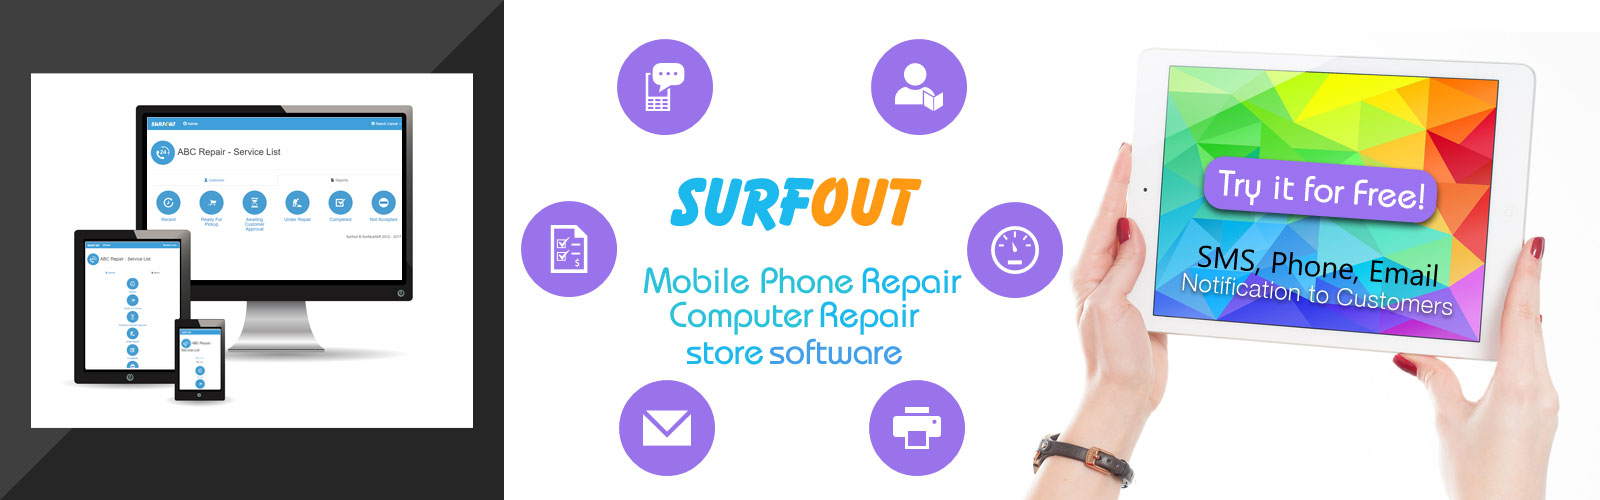 https://www.surfacesoft.com/wp-content/uploads/2017/03/RepairshopBanner.jpg